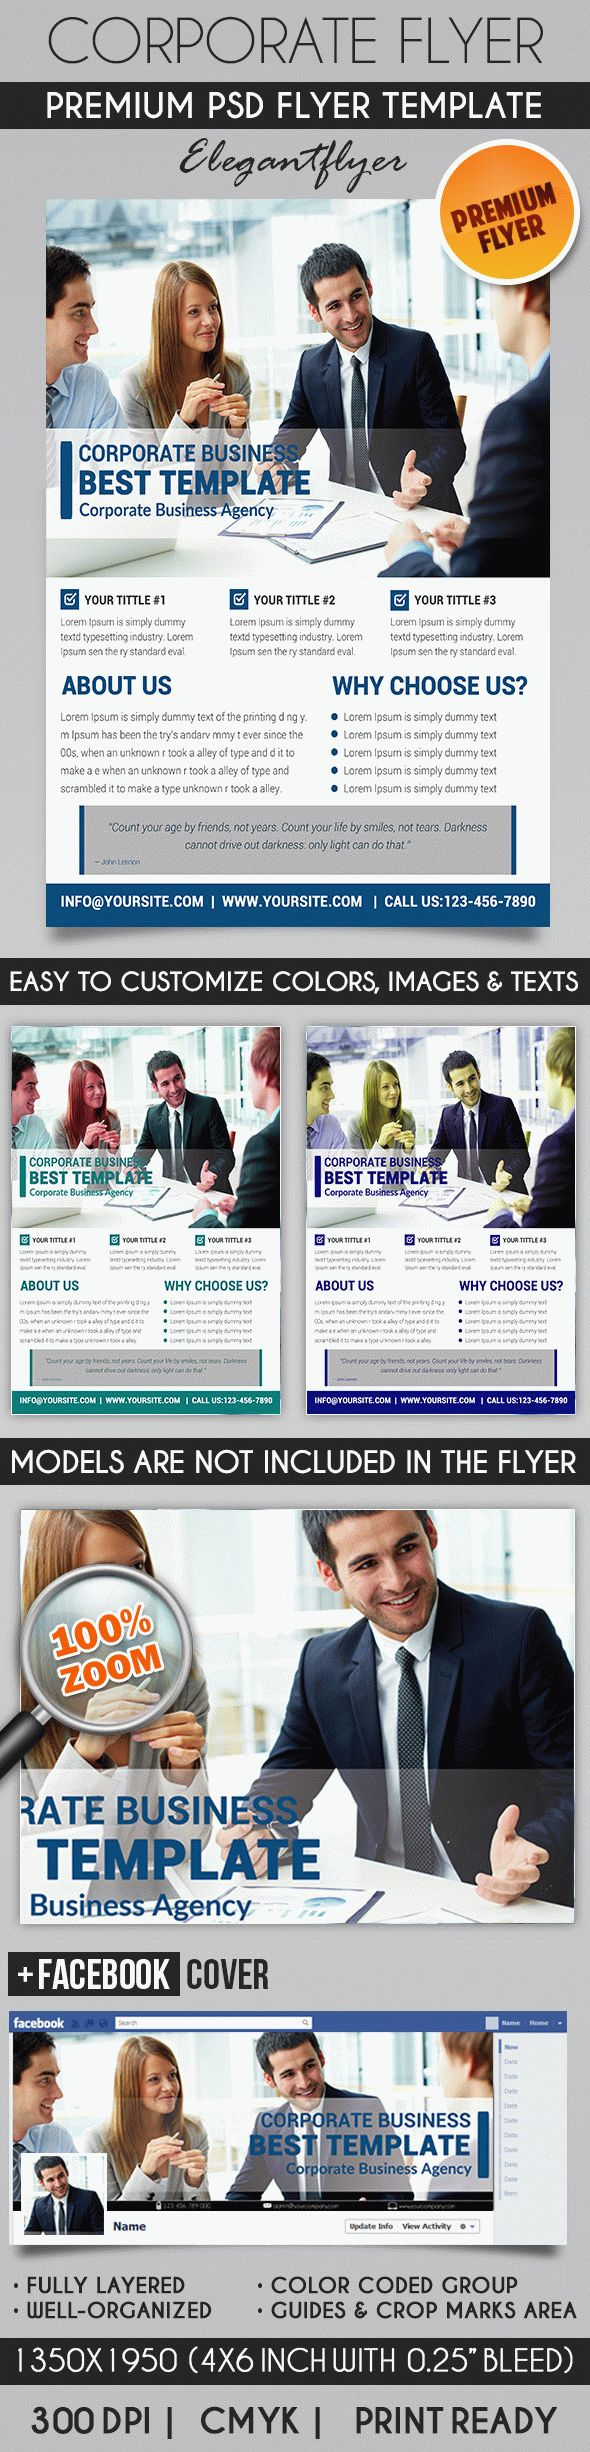 Template for Corporate Business Flyer